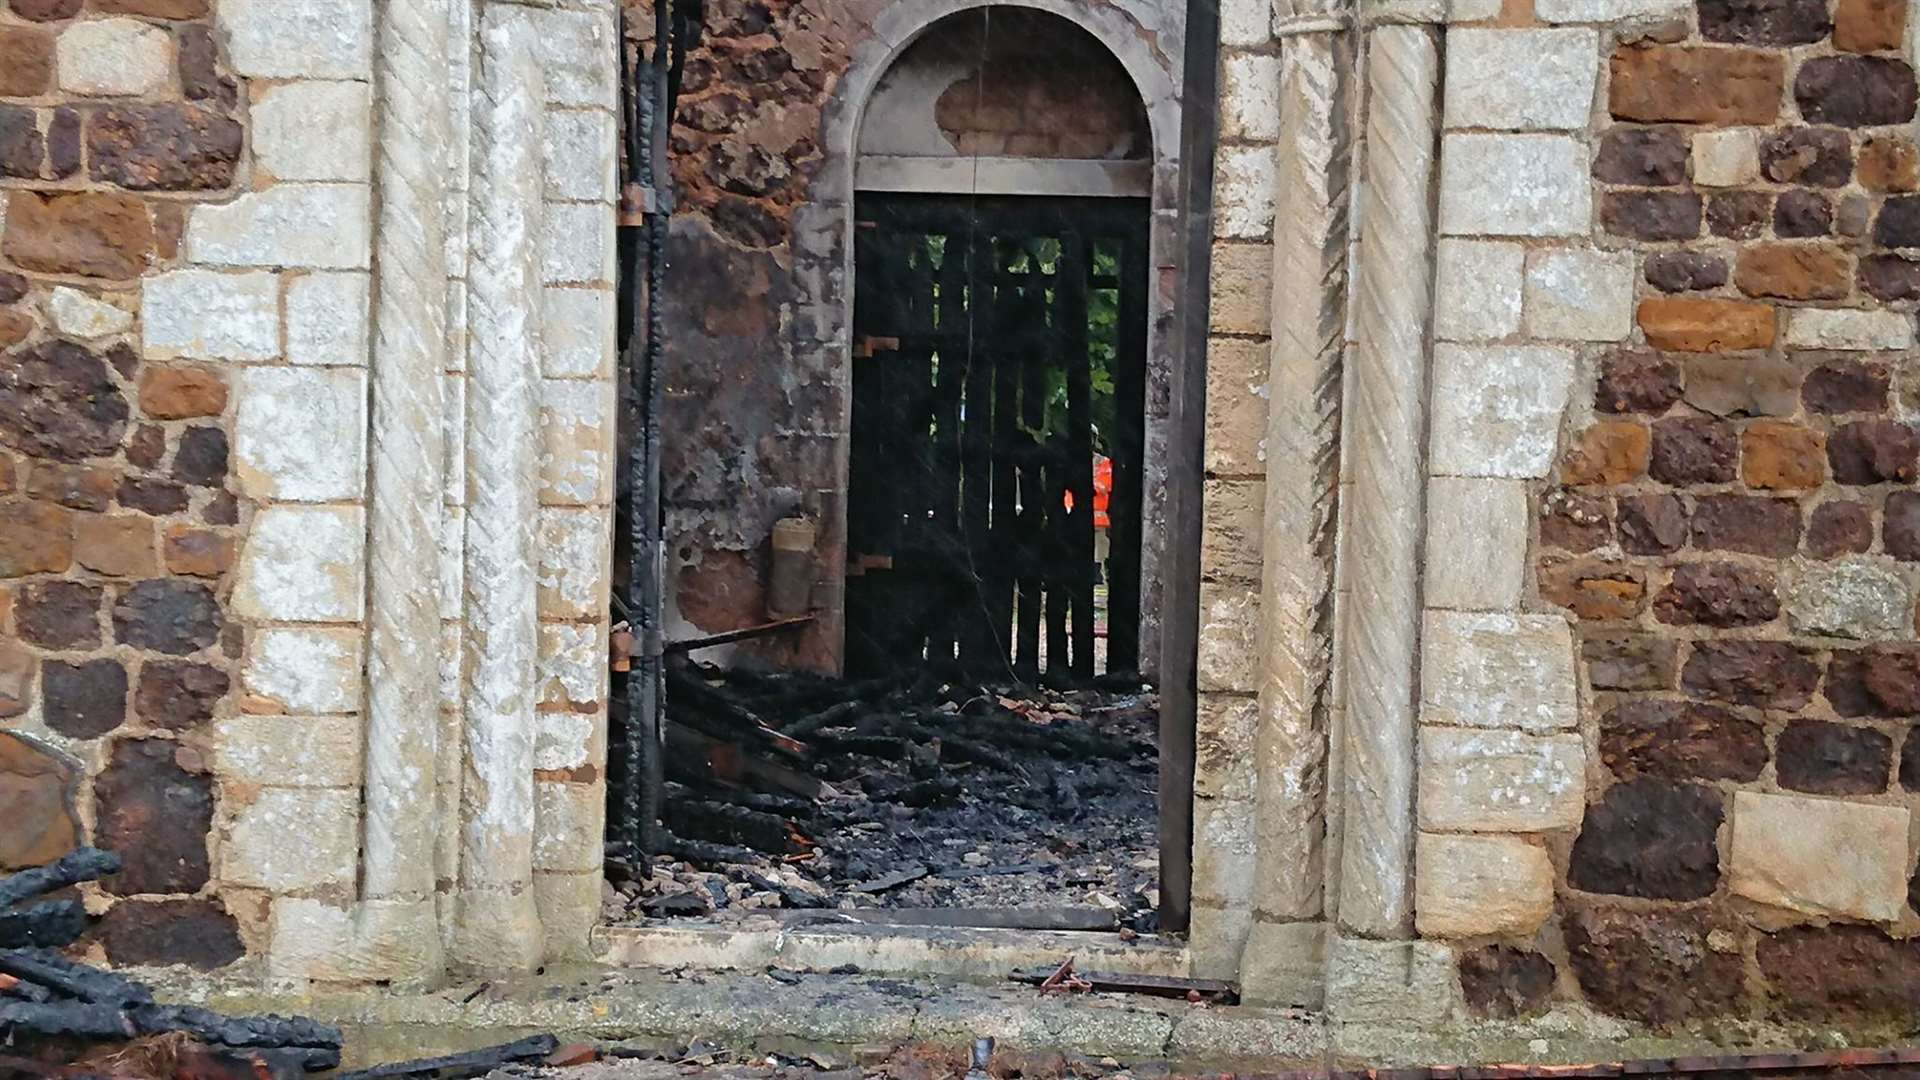 The inside of the church has been gutted by flames